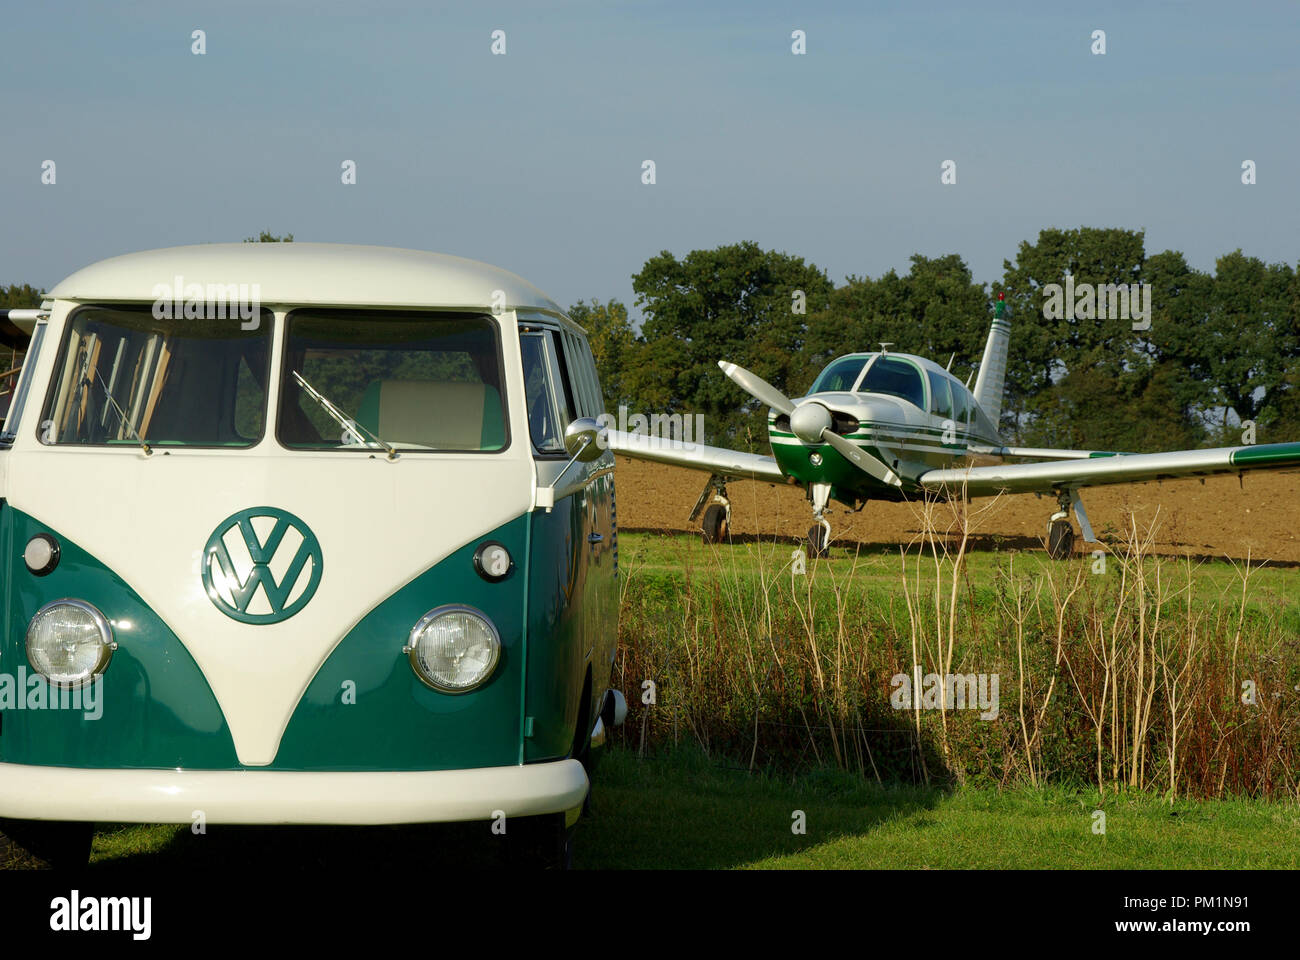 Matching coloured VW Camper van and Piper Cherokee Arrow light aircraft plane at a small field grass airfield. Classic timeless period countryside - Stock Image